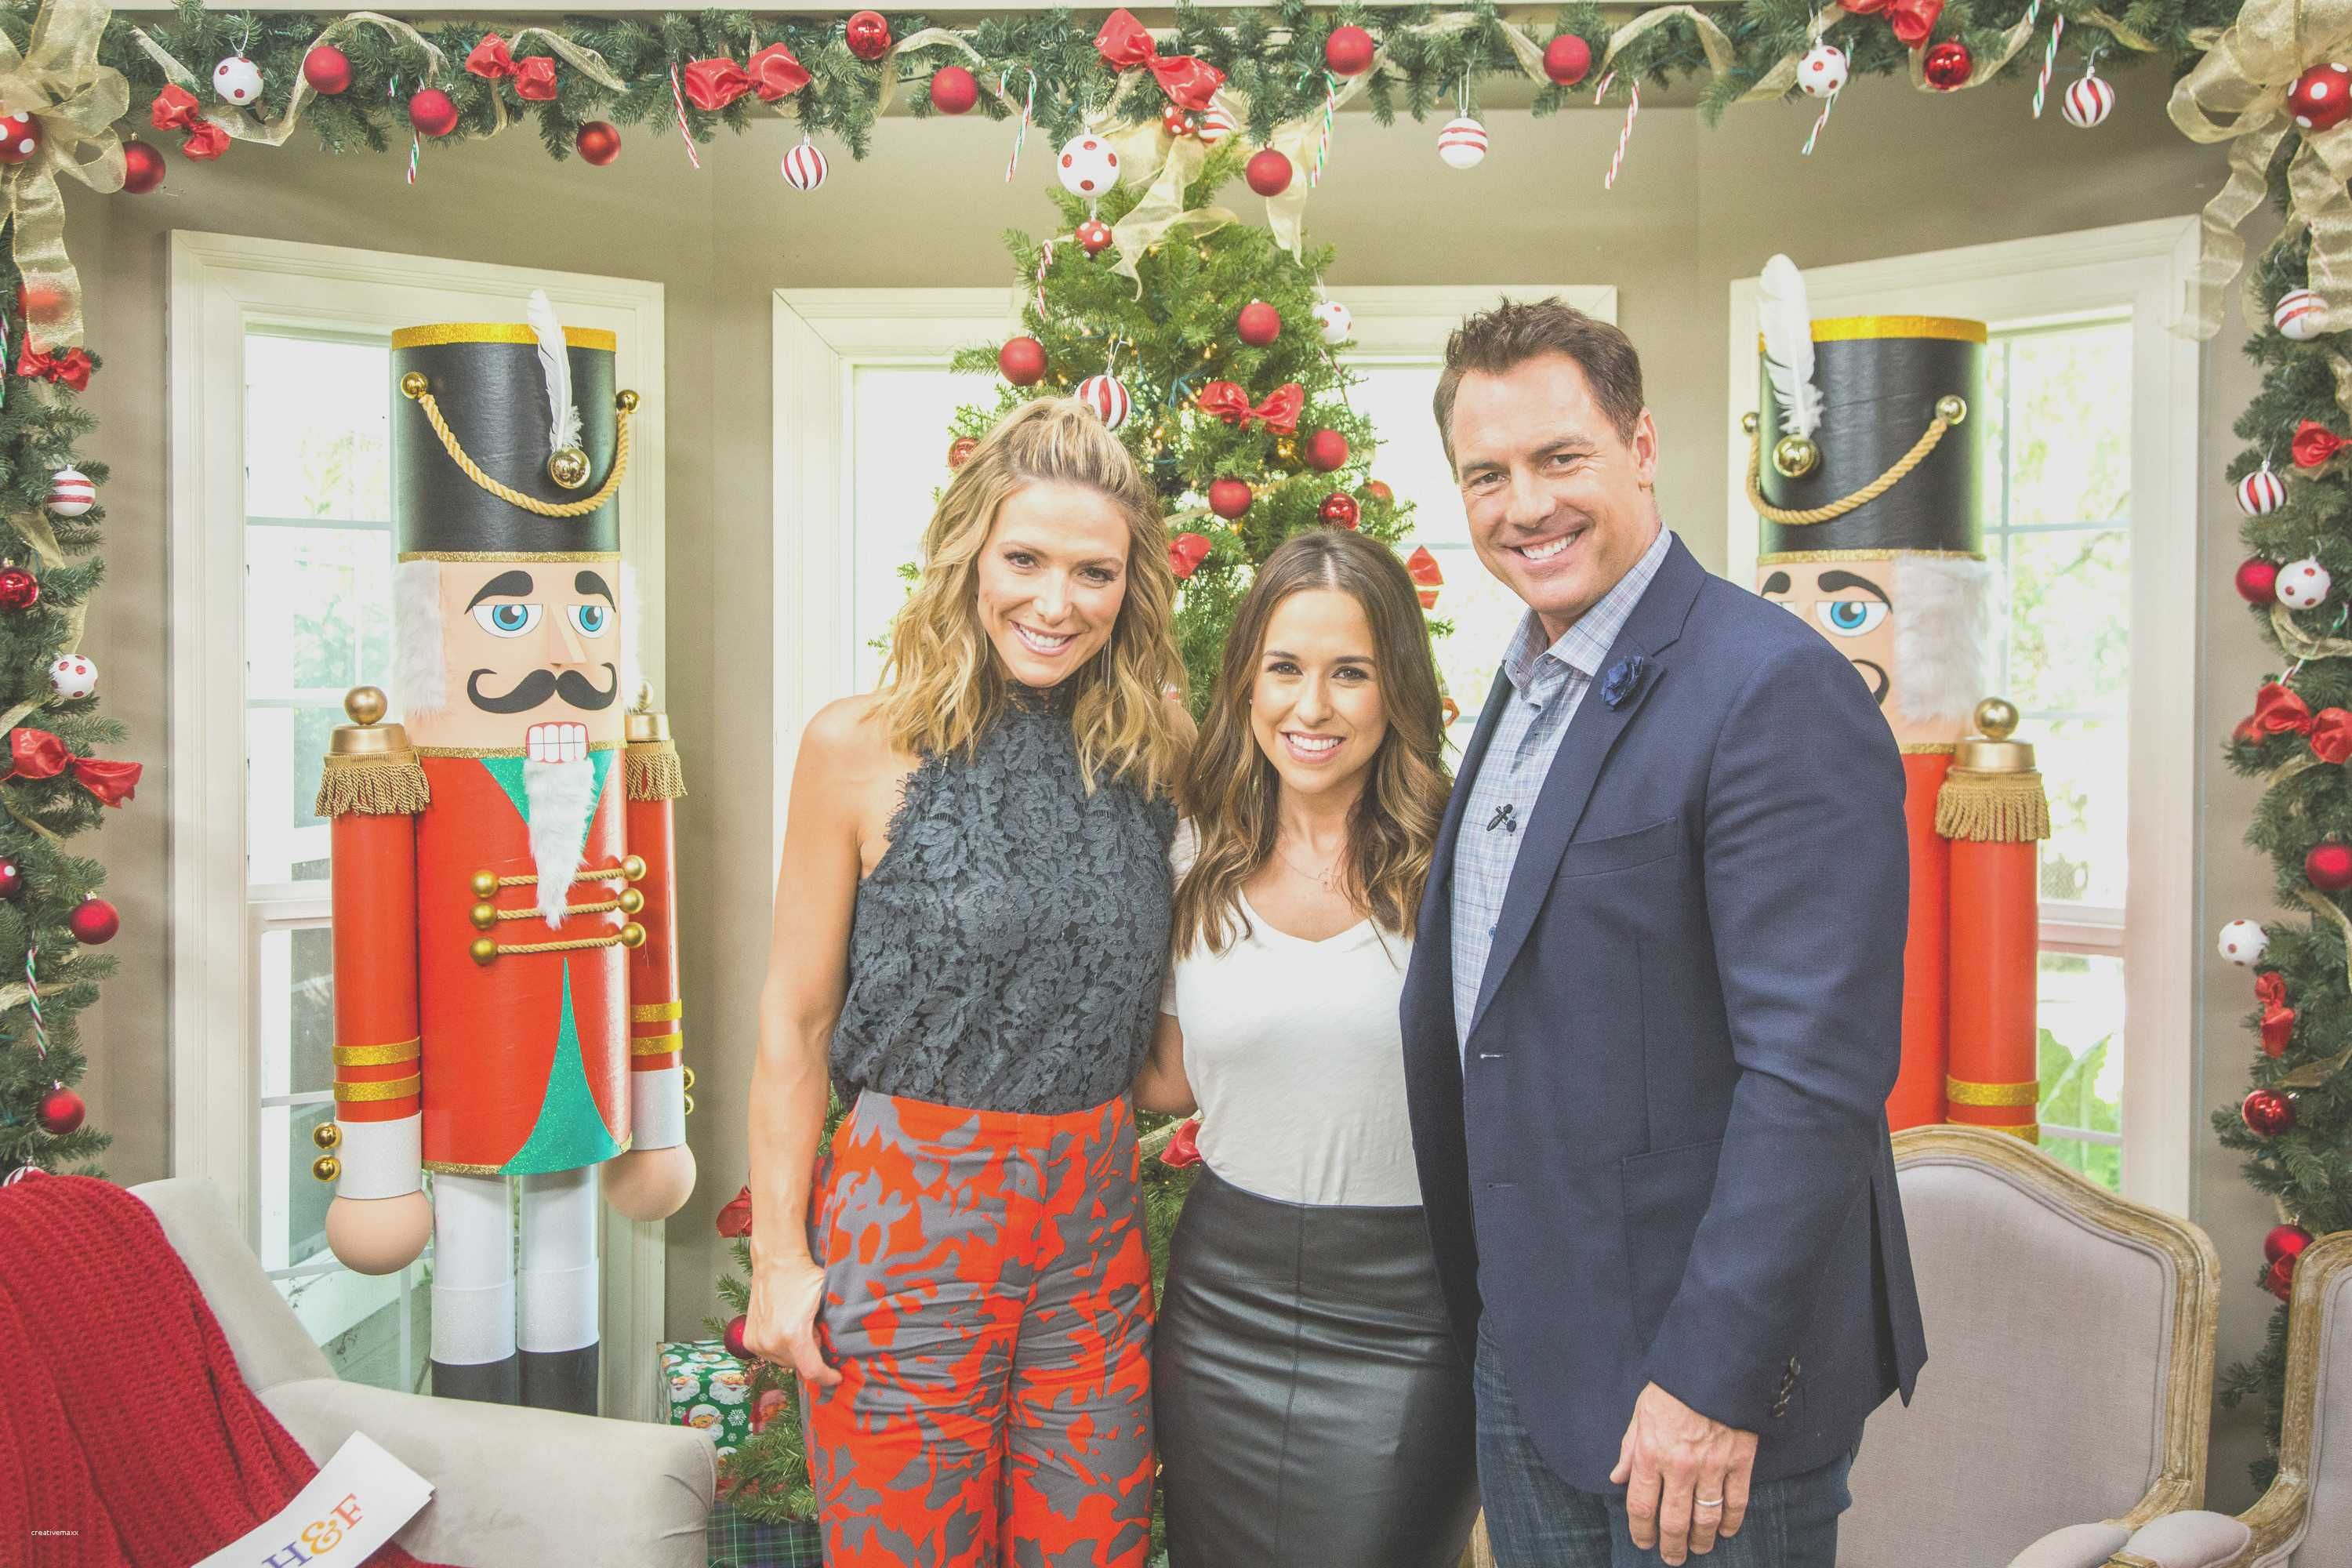 Sharing Christmas Hallmark.Beautiful Sharing Christmas Hallmark Movie Holiday Party